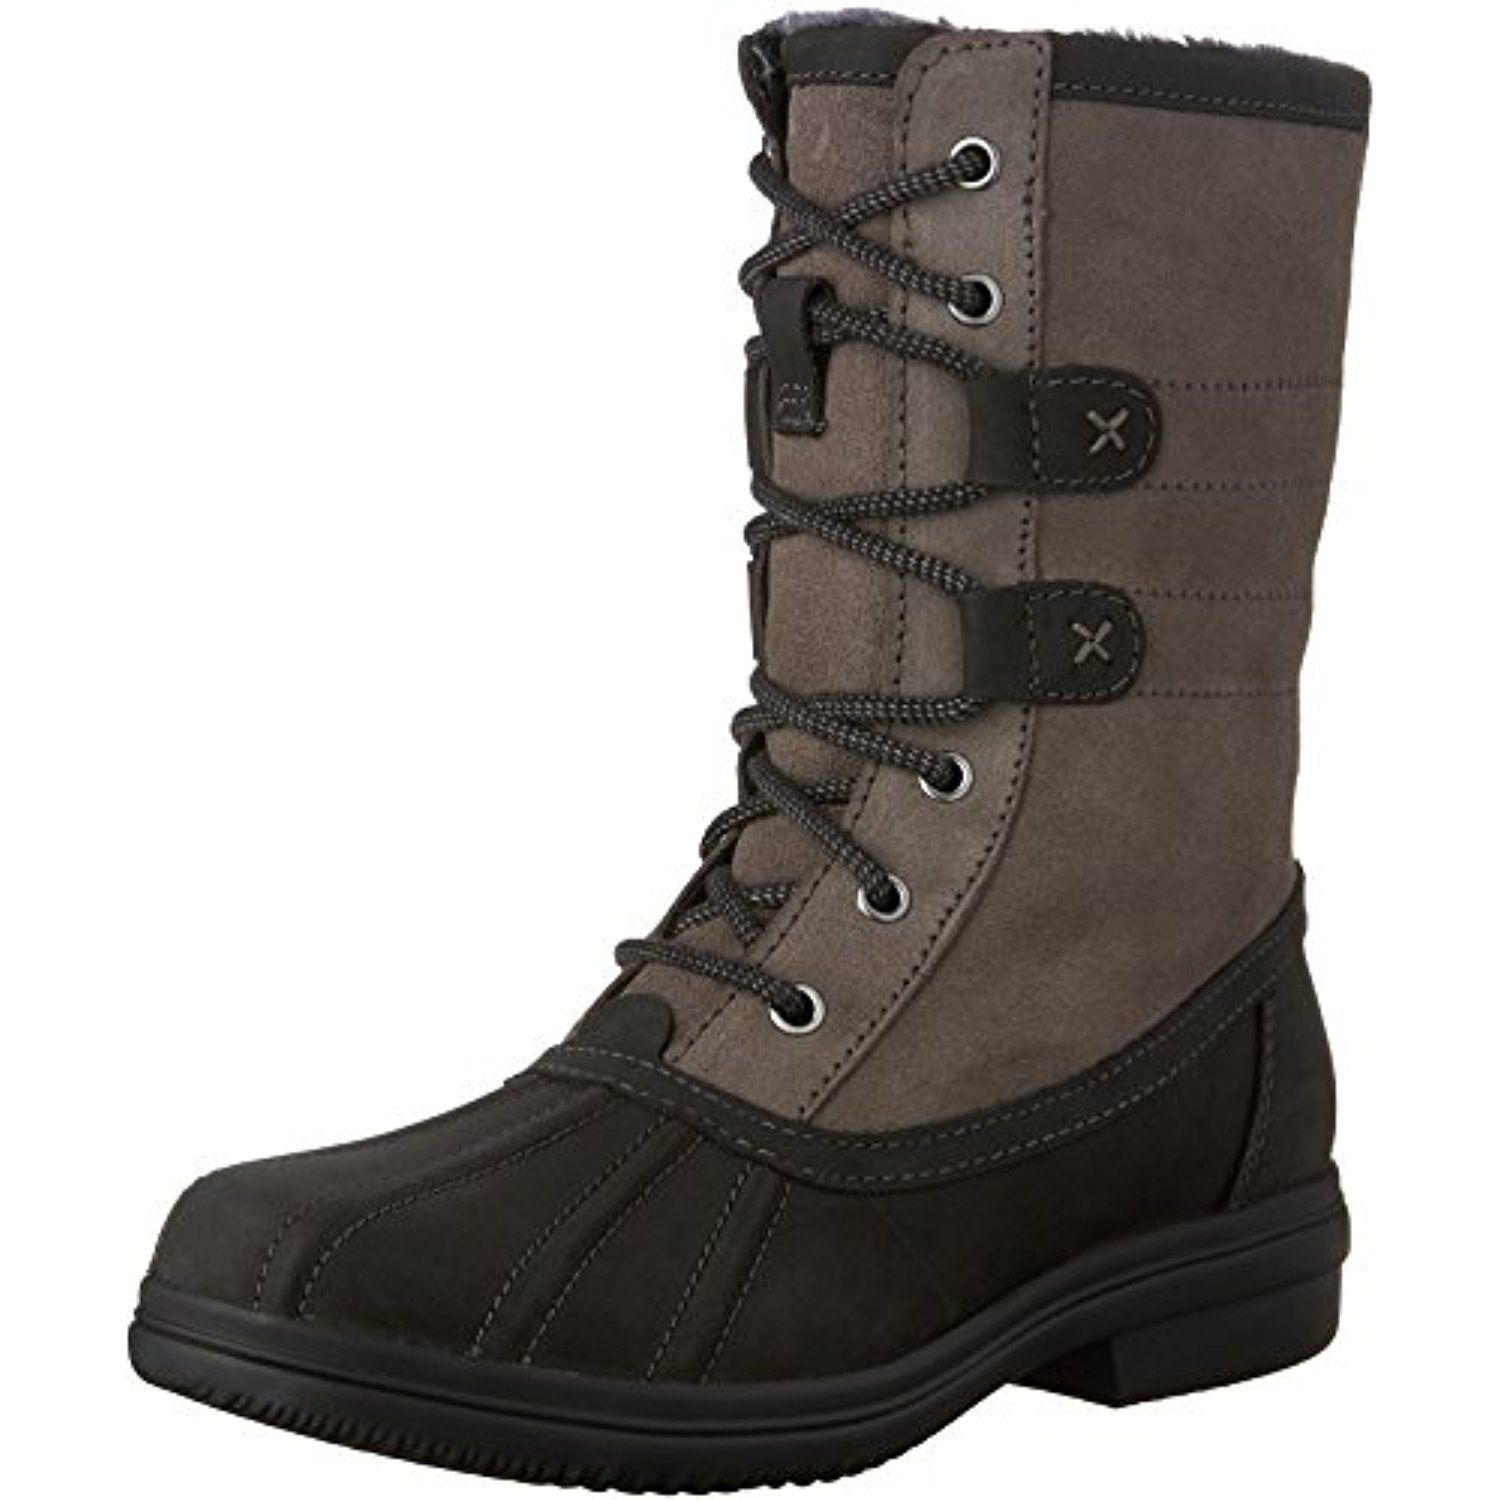 Clarks Womens Tavoy Juniper Black Leather Combo Boot 6 - Great boot,  stylish and comfotable. Only negative is they bunch up at the ankle area,  ...